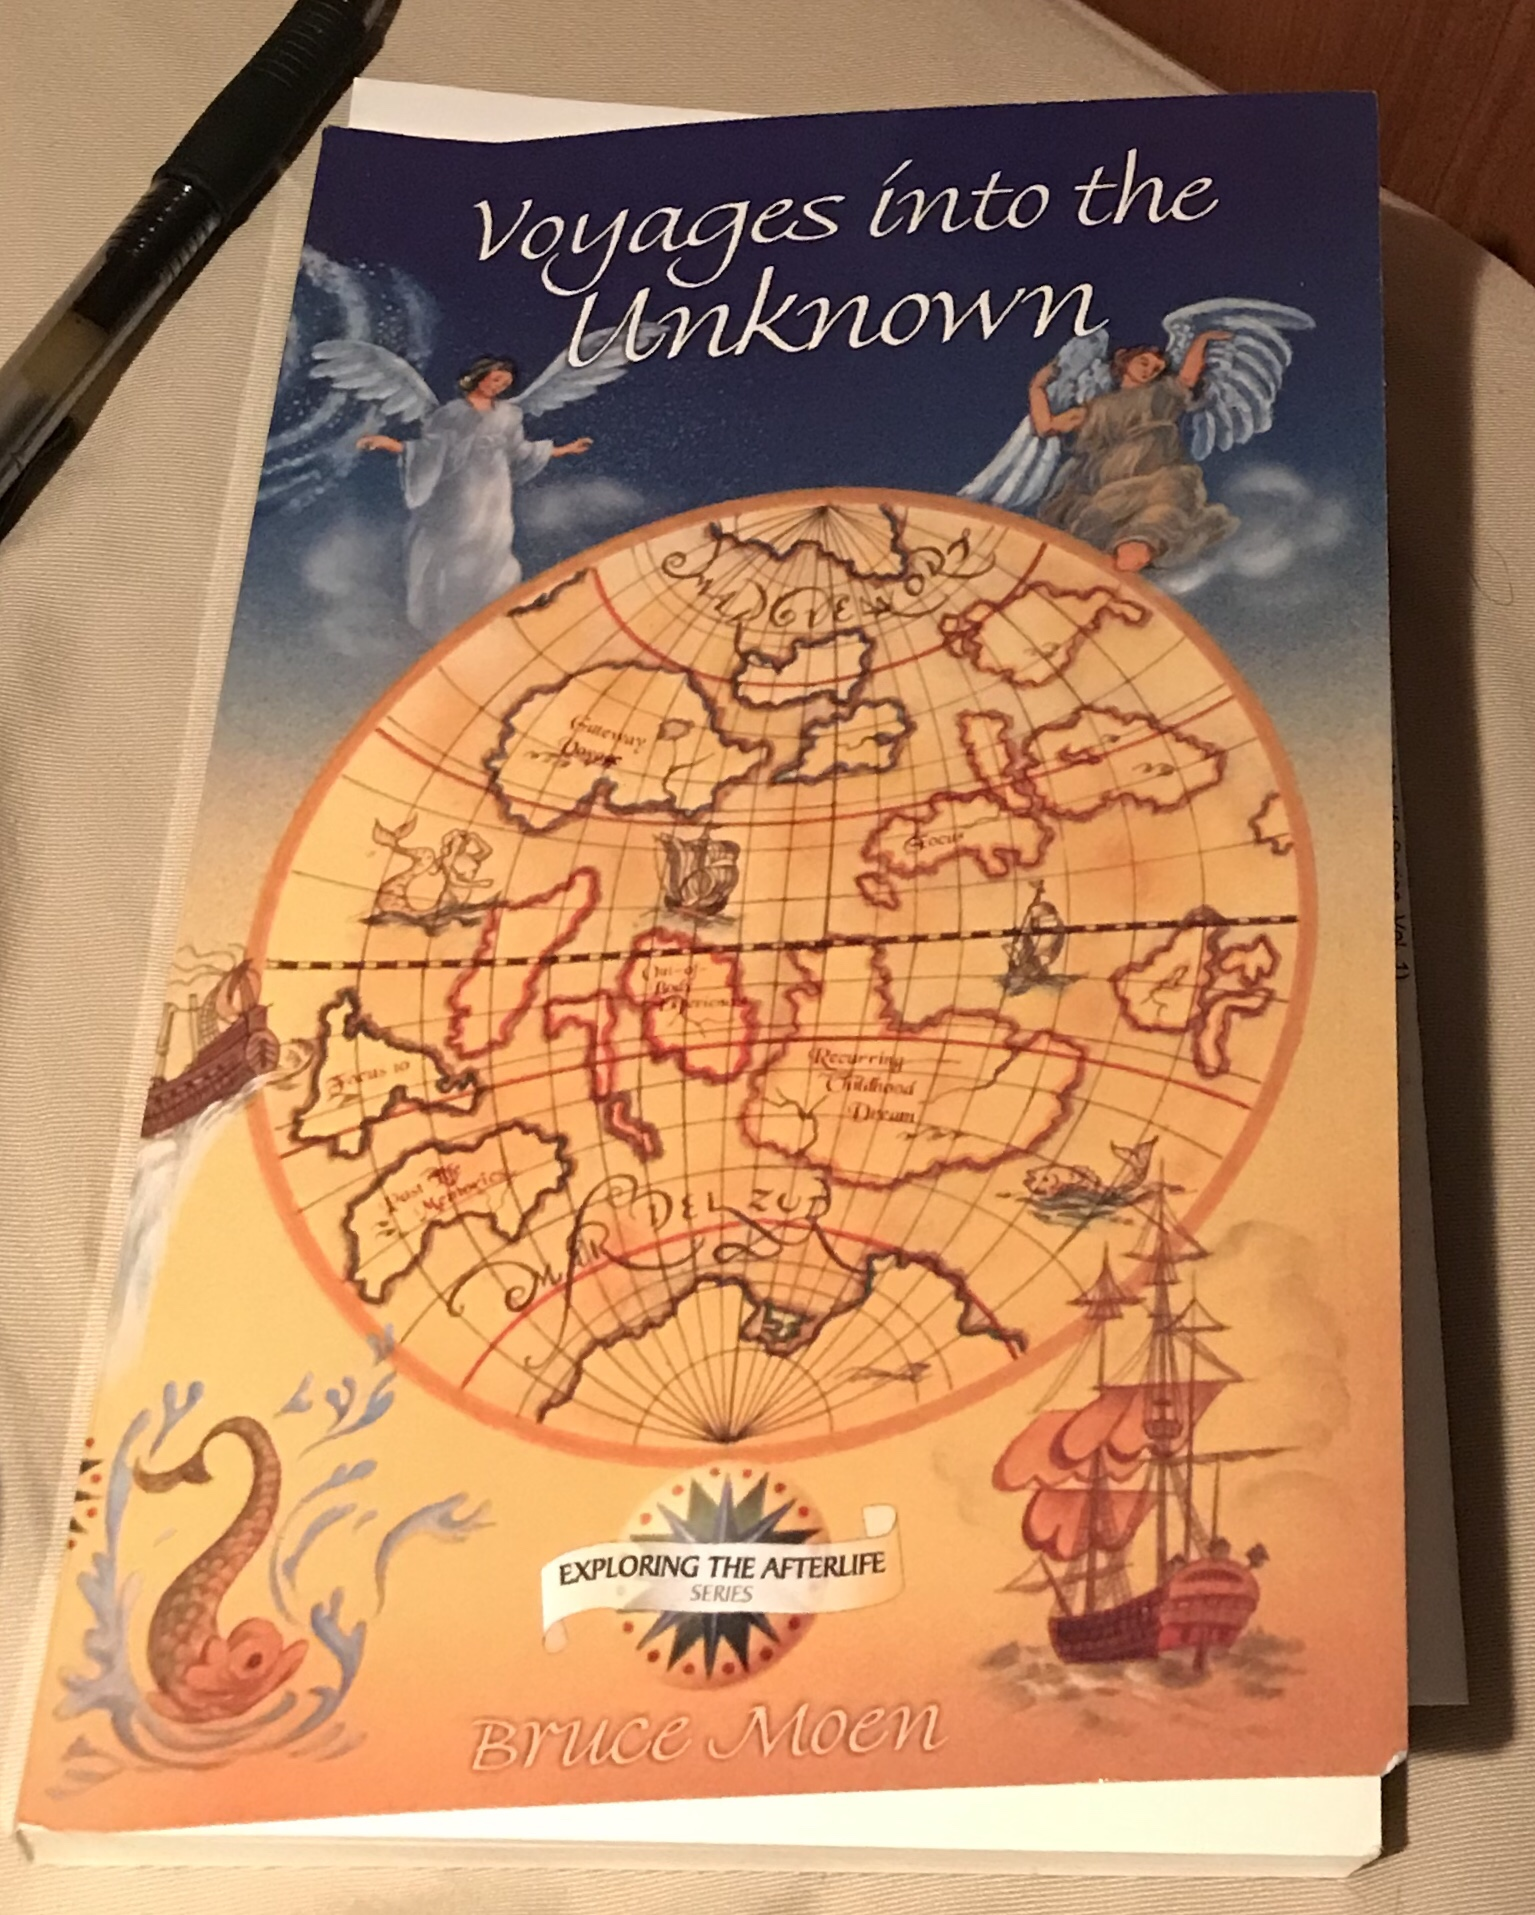 Voyages into the Unknown